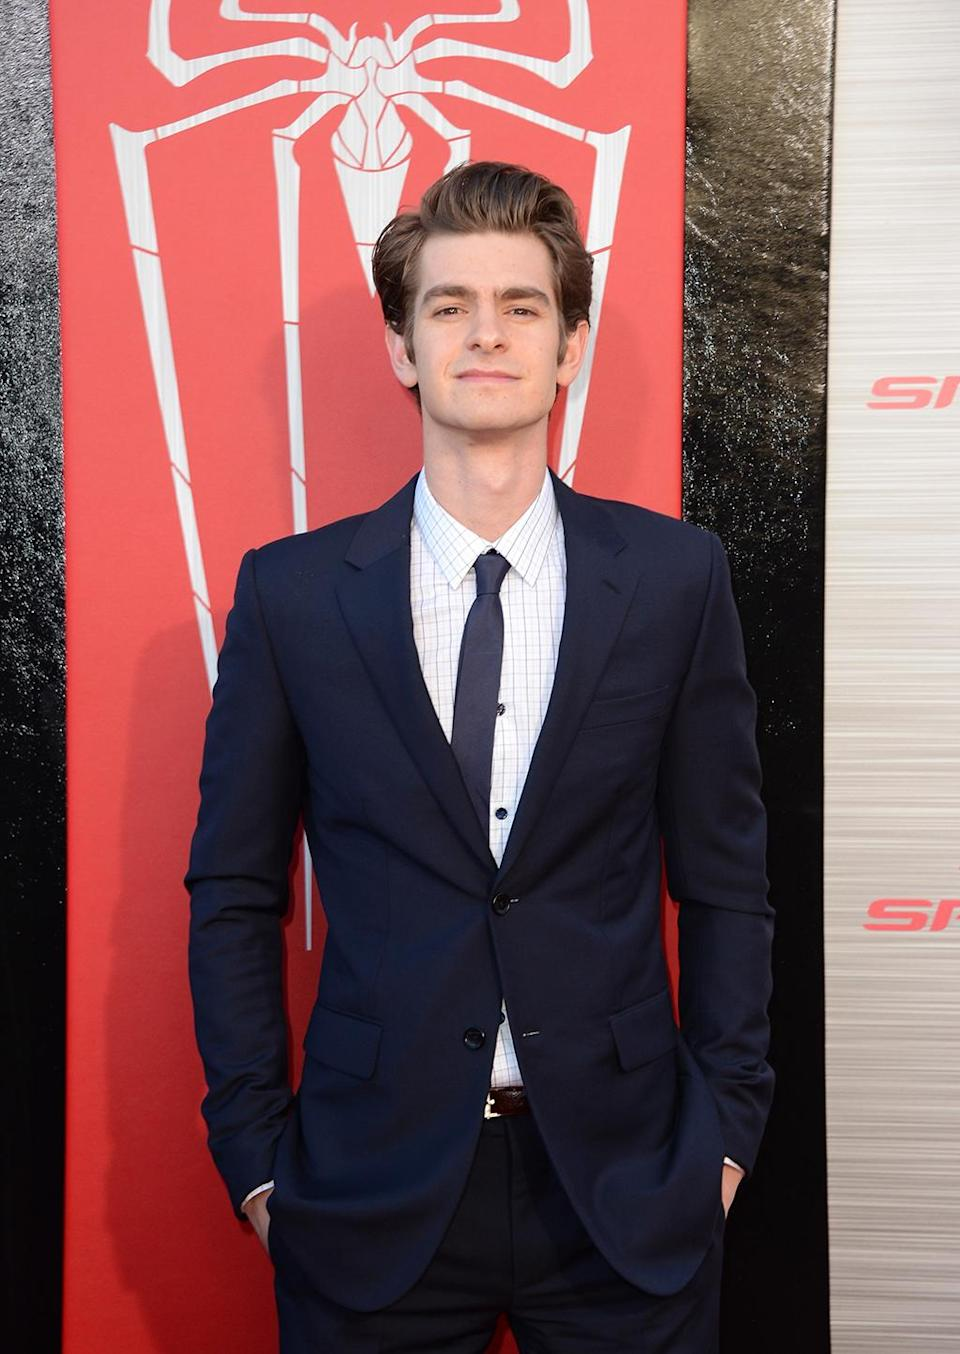 <p>After a five-year hiatus, <em>The Amazing Spider-Man</em> hit theaters with Andrew Garfield in the title role. He poses with the new Spidey logo at the premiere on June 28, 2012. (Photo: Jason Merritt/Getty Images) </p>